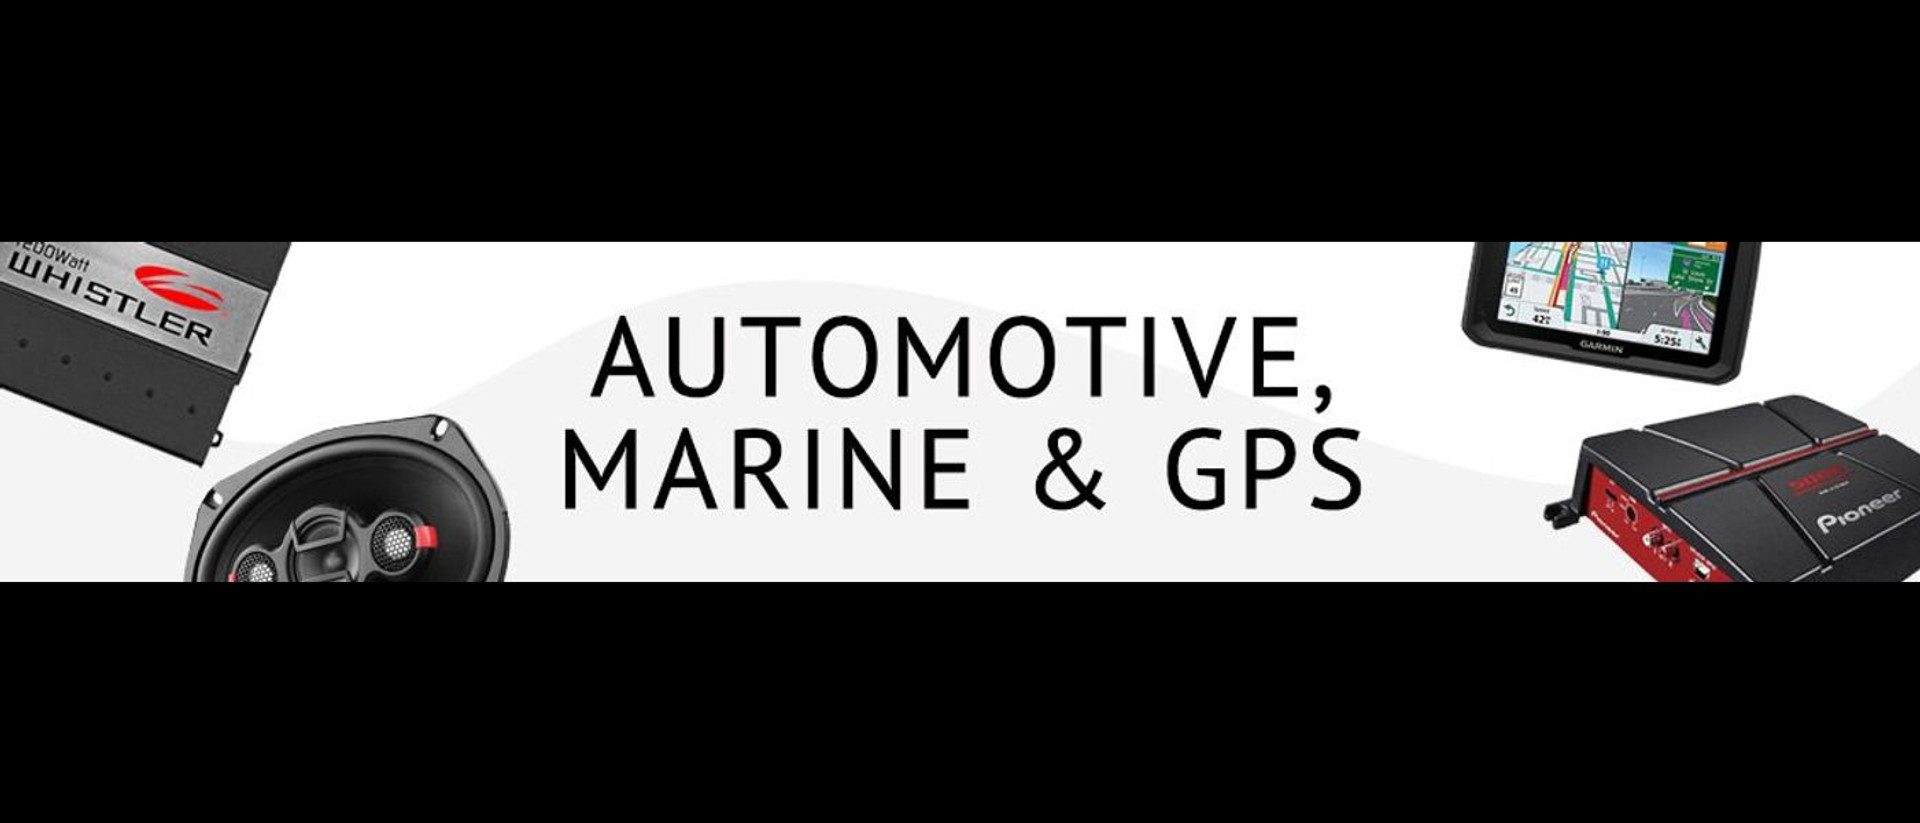 AUTOMOTIVE, MARINE & GPS Offer customers the best in car audio and 12-volt accessories for automotive, marine, and also recreational vehicles.